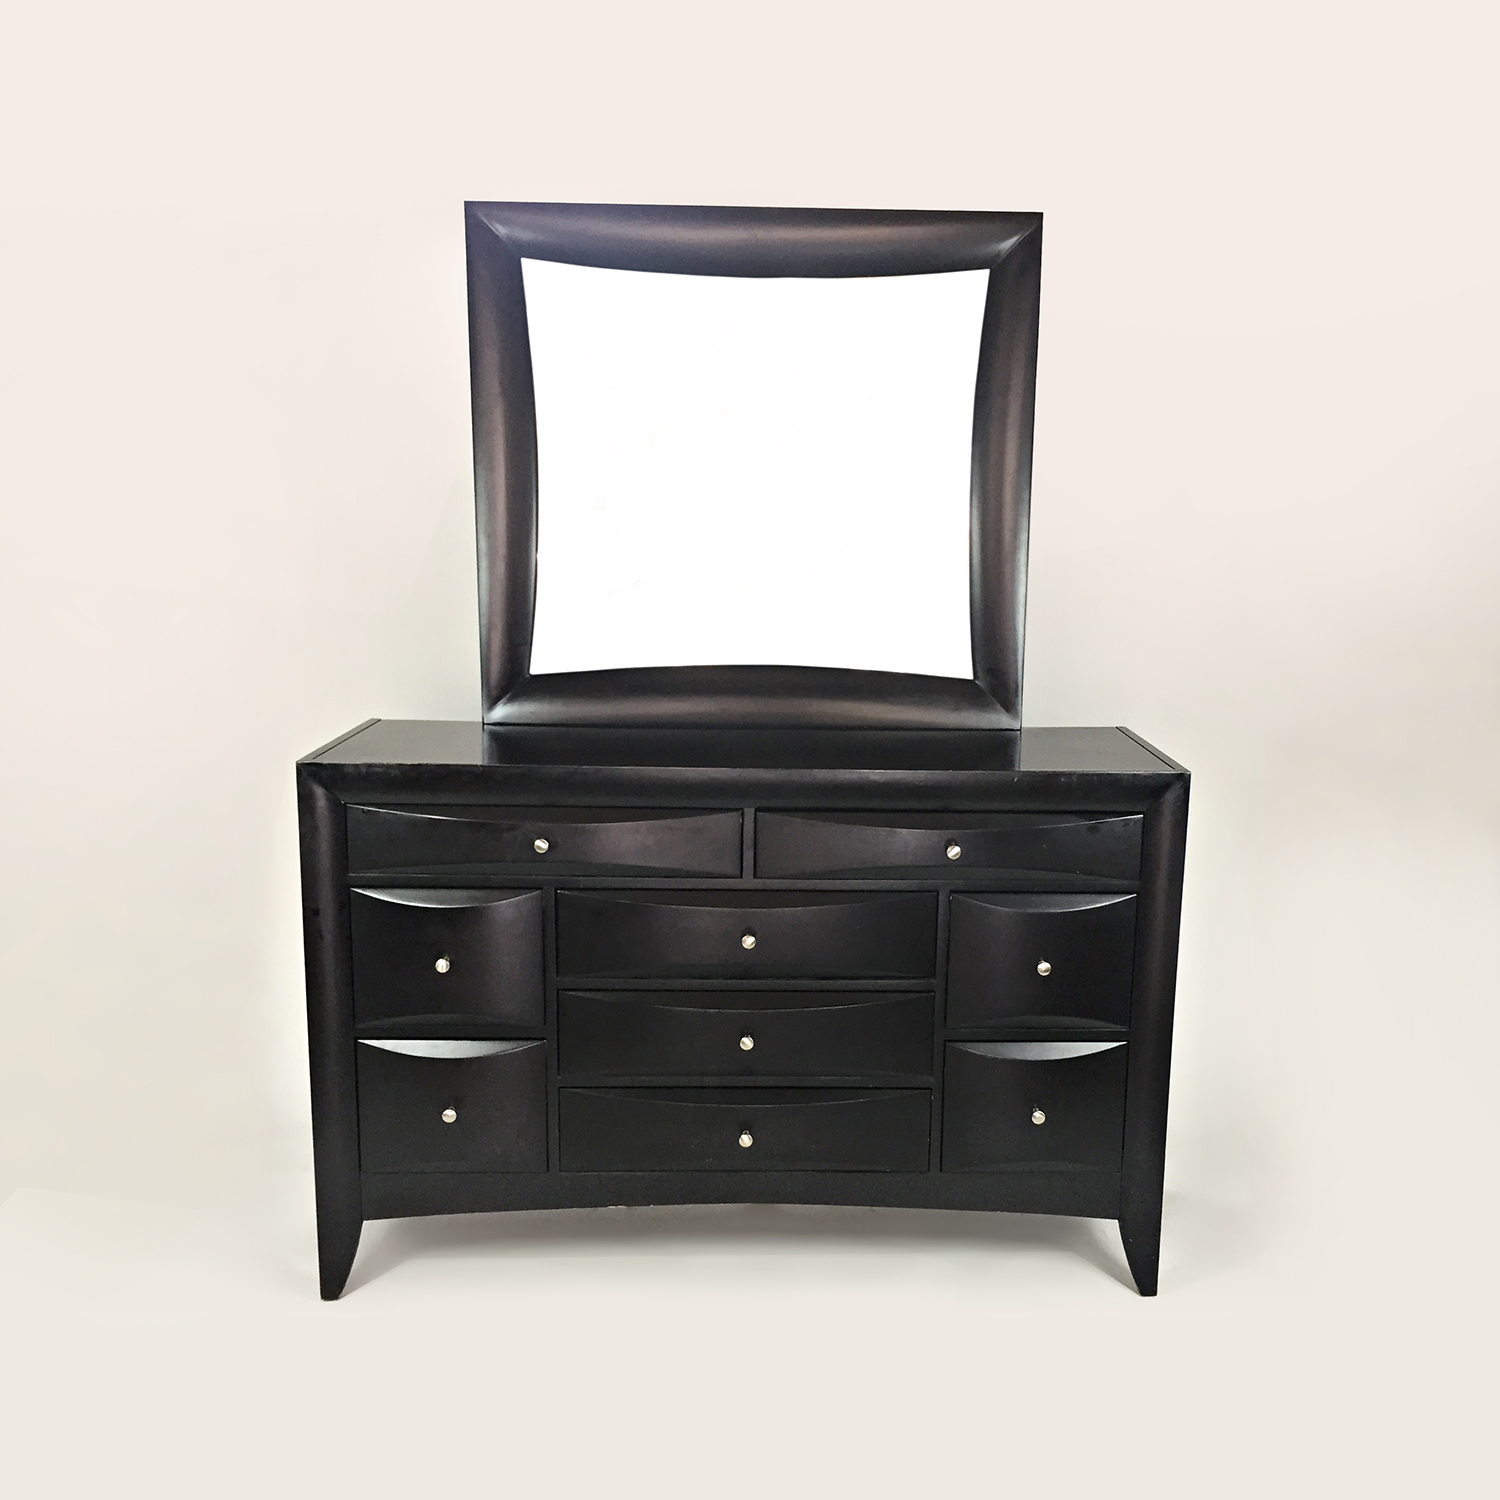 Rooms To Go Valencia Dresser with Mirror on sale